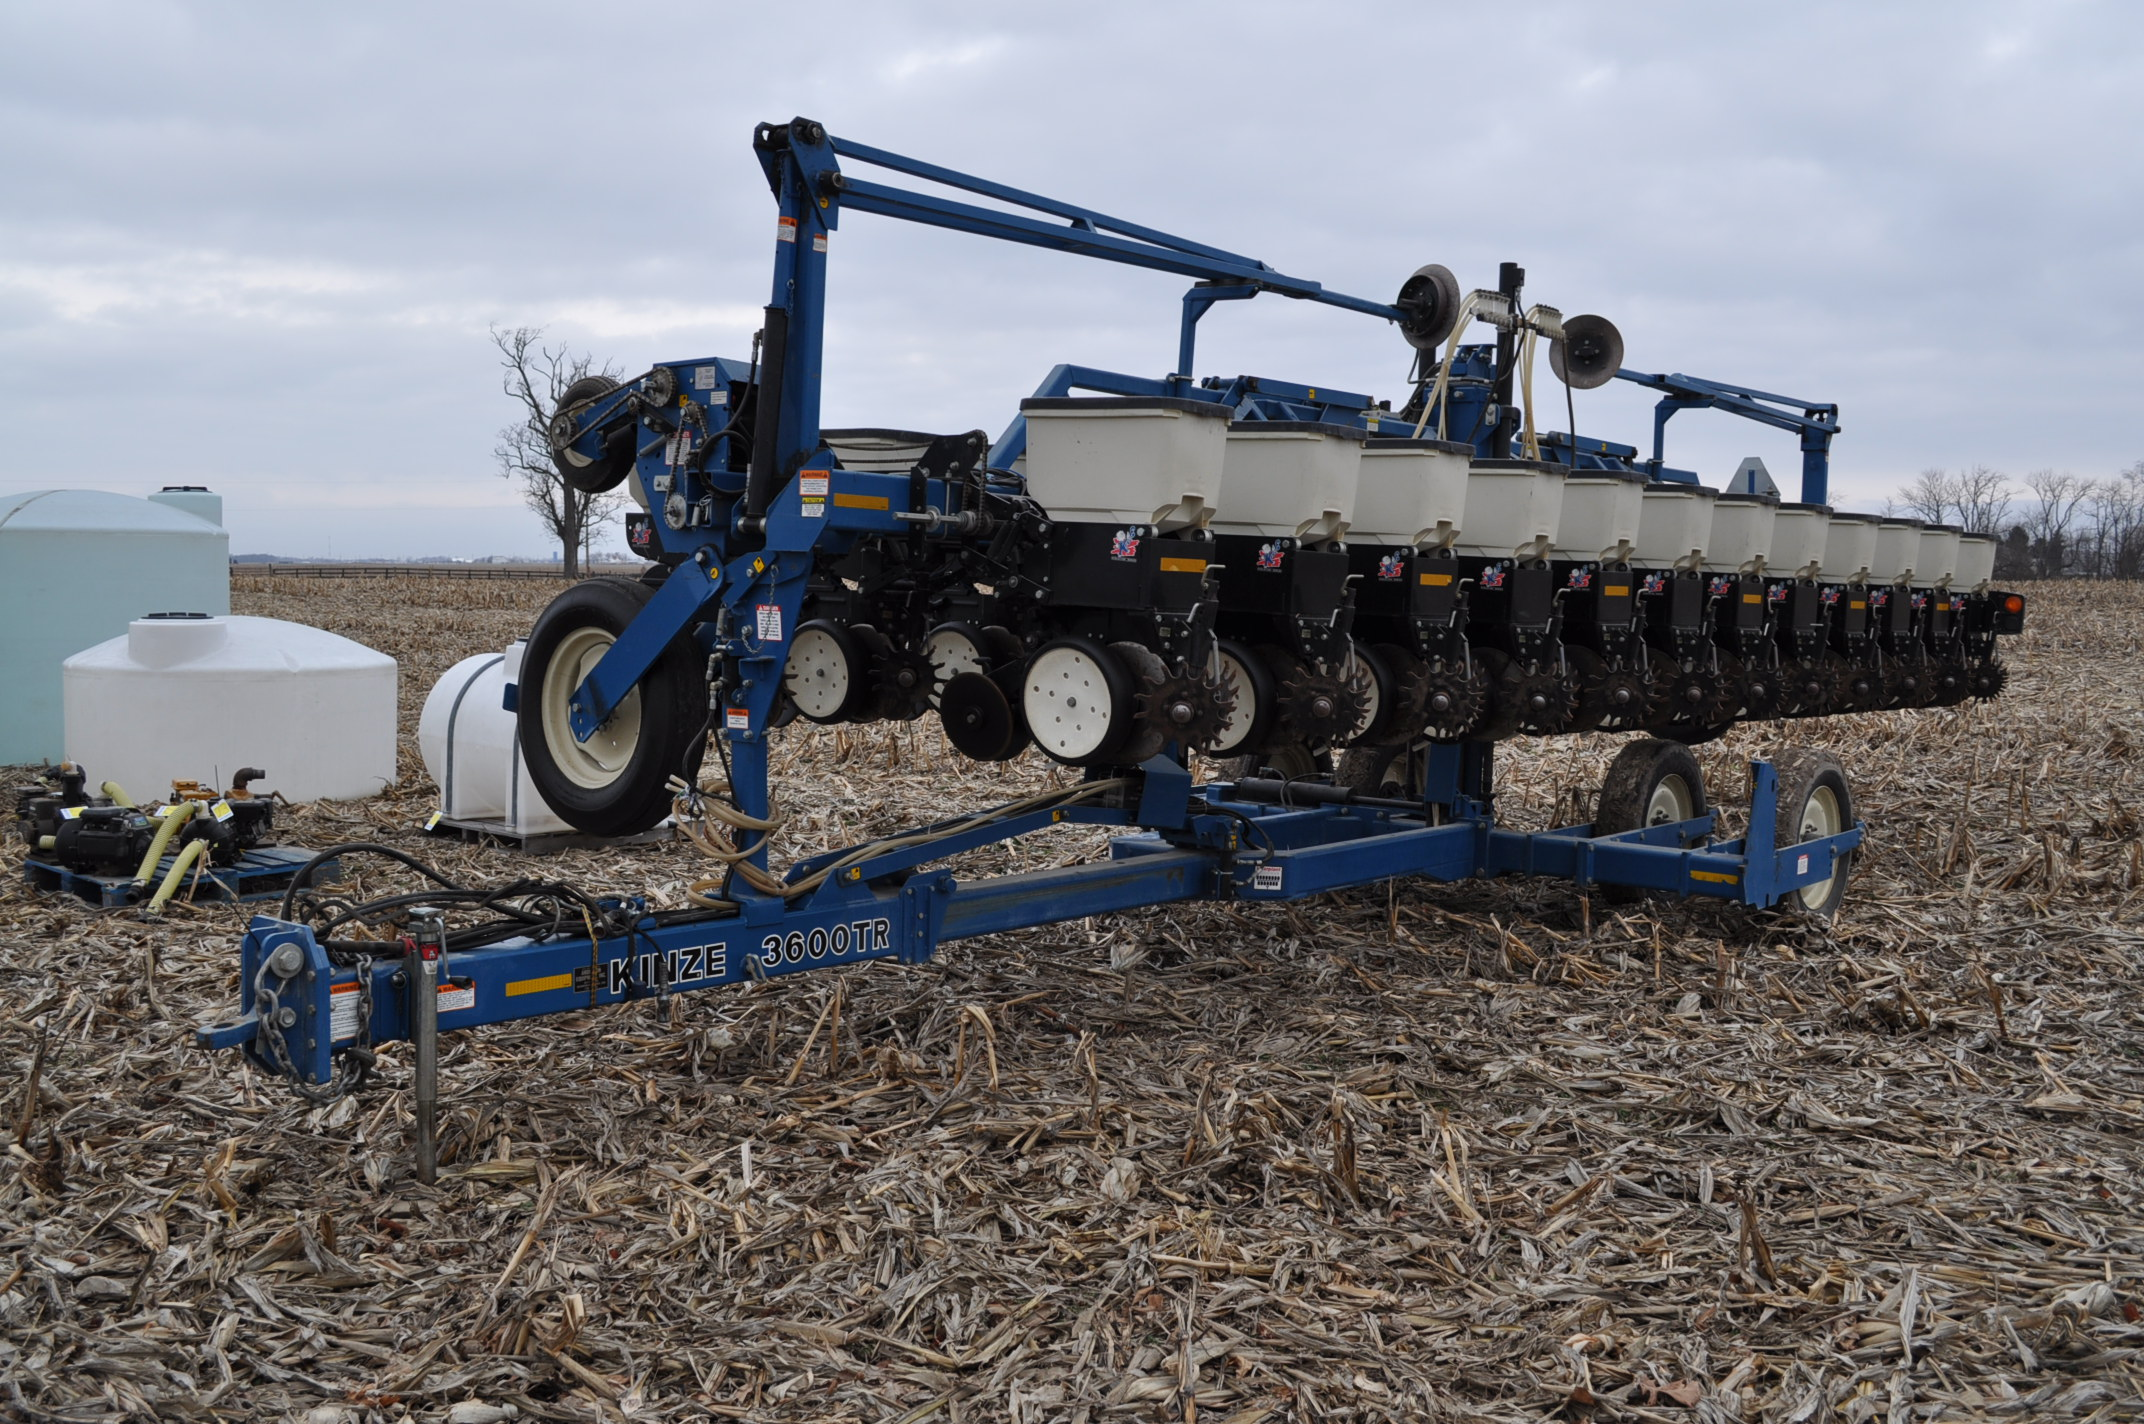 Kinze 3600TR planter, 12/24 twin row, Martin row cleaners, markers, finger pick up, cast closing